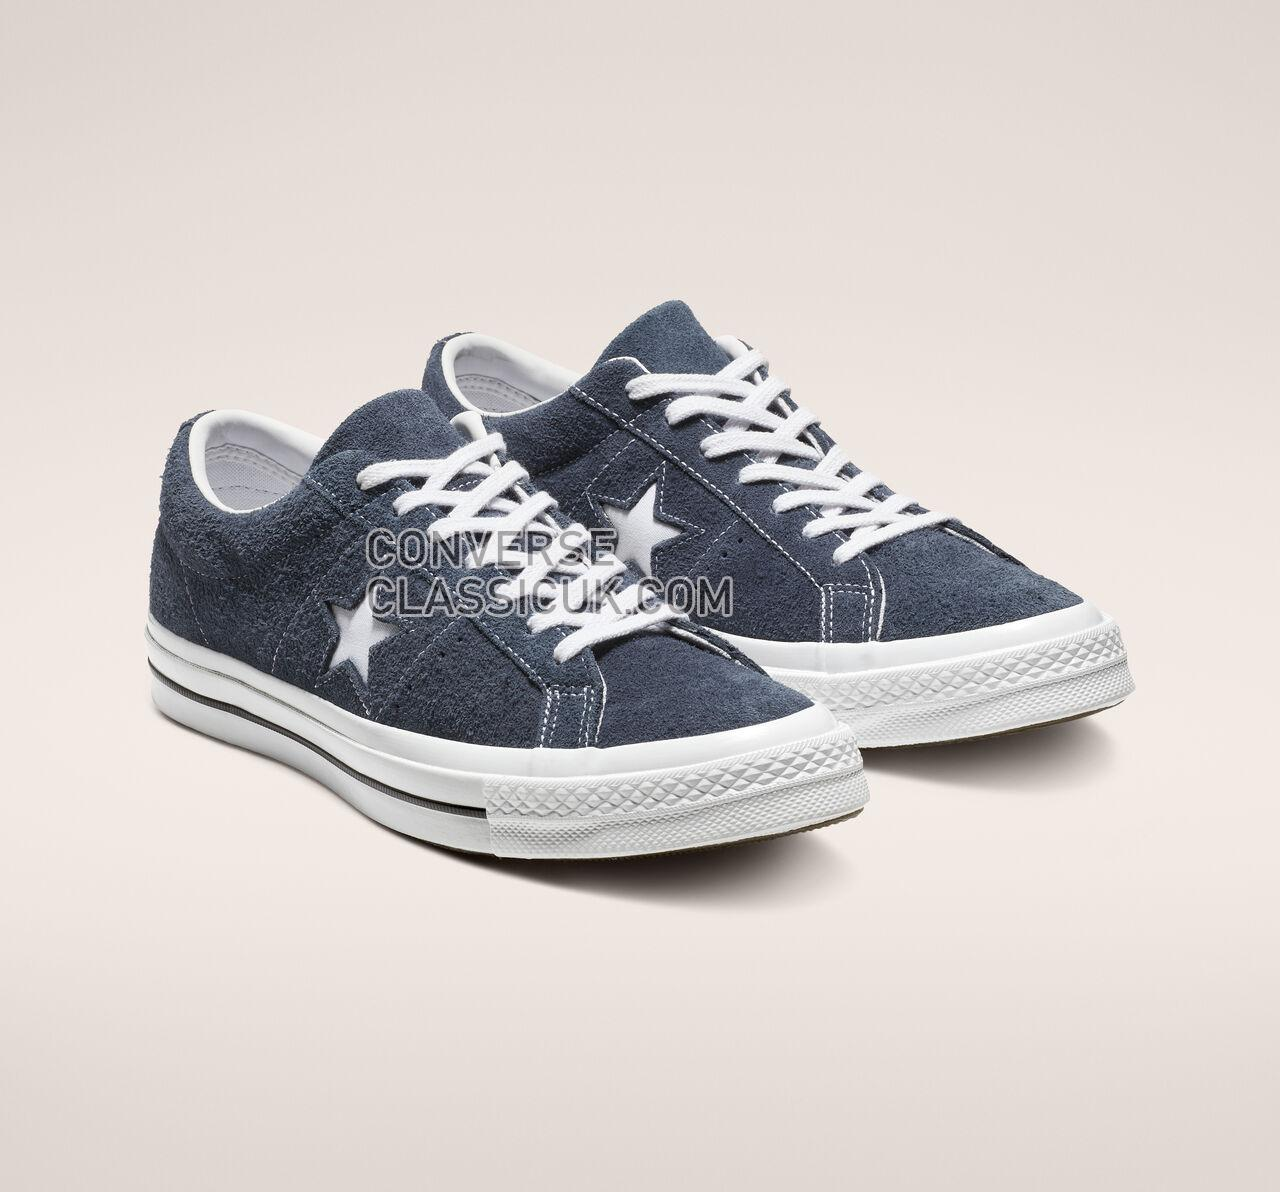 Converse One Star Vintage Suede Low Top Mens Womens Unisex 158371C Navy/White/White Shoes